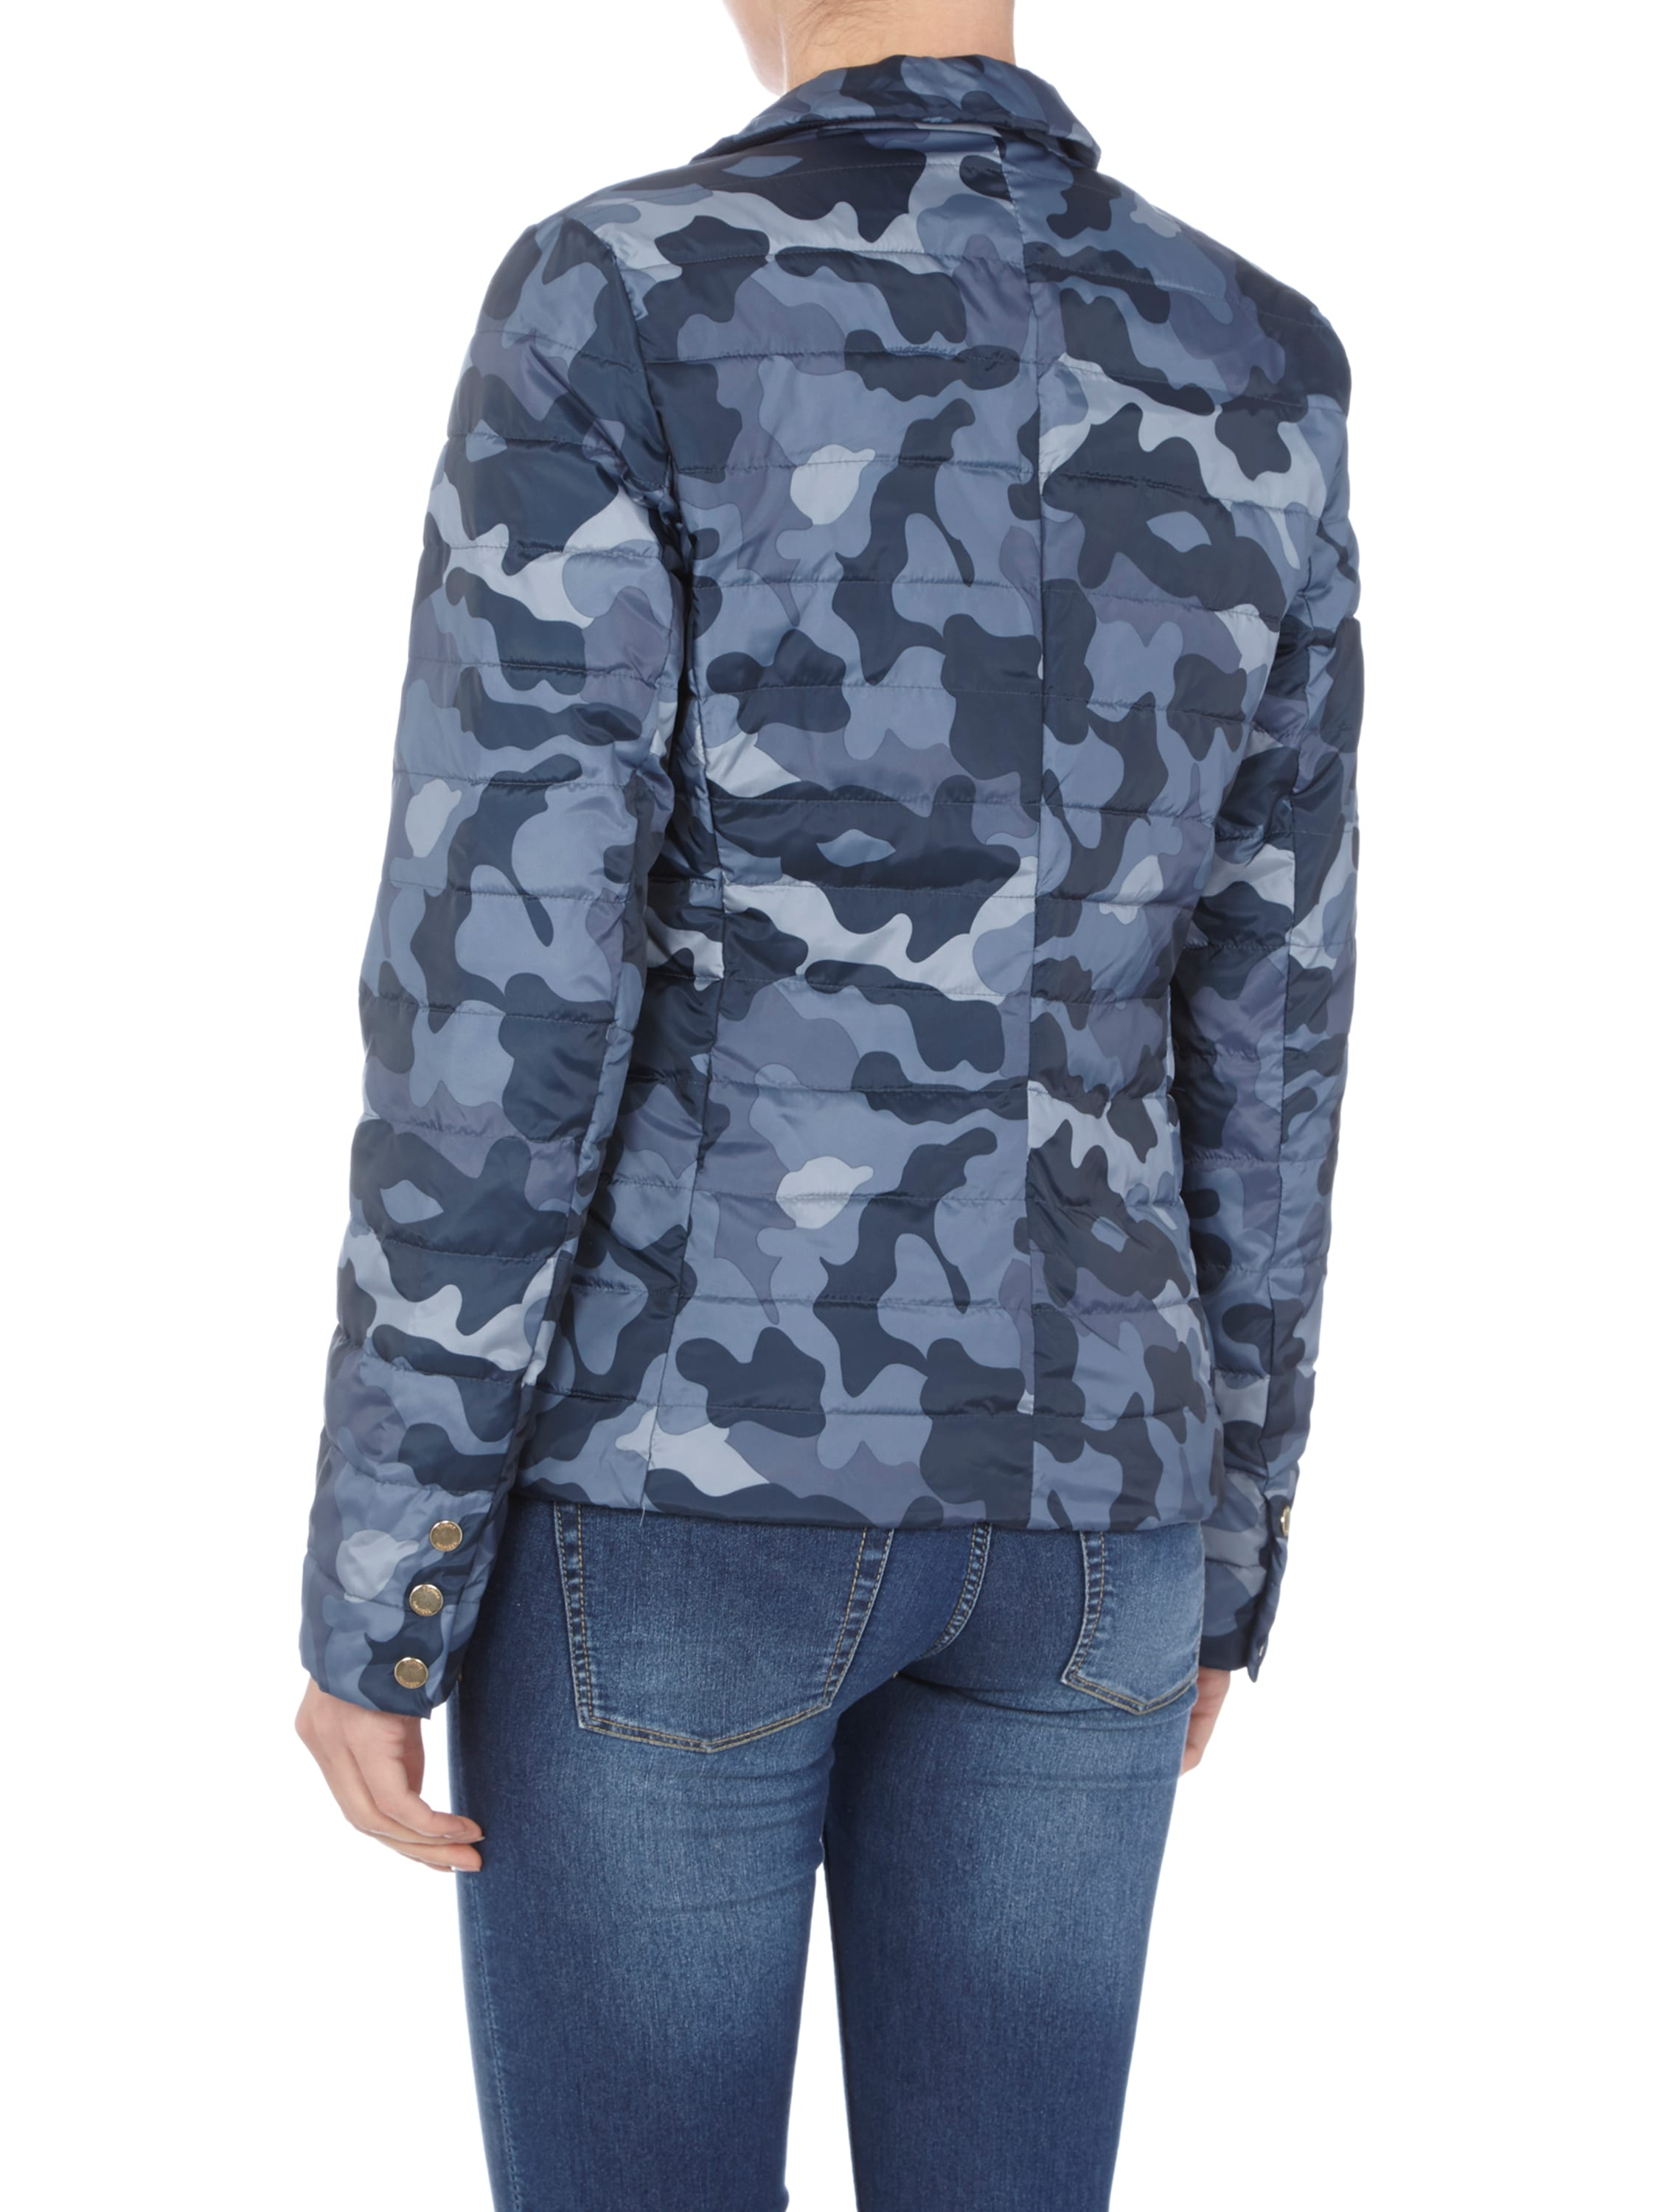 steppjacke mit camouflage muster fashion id online shop. Black Bedroom Furniture Sets. Home Design Ideas